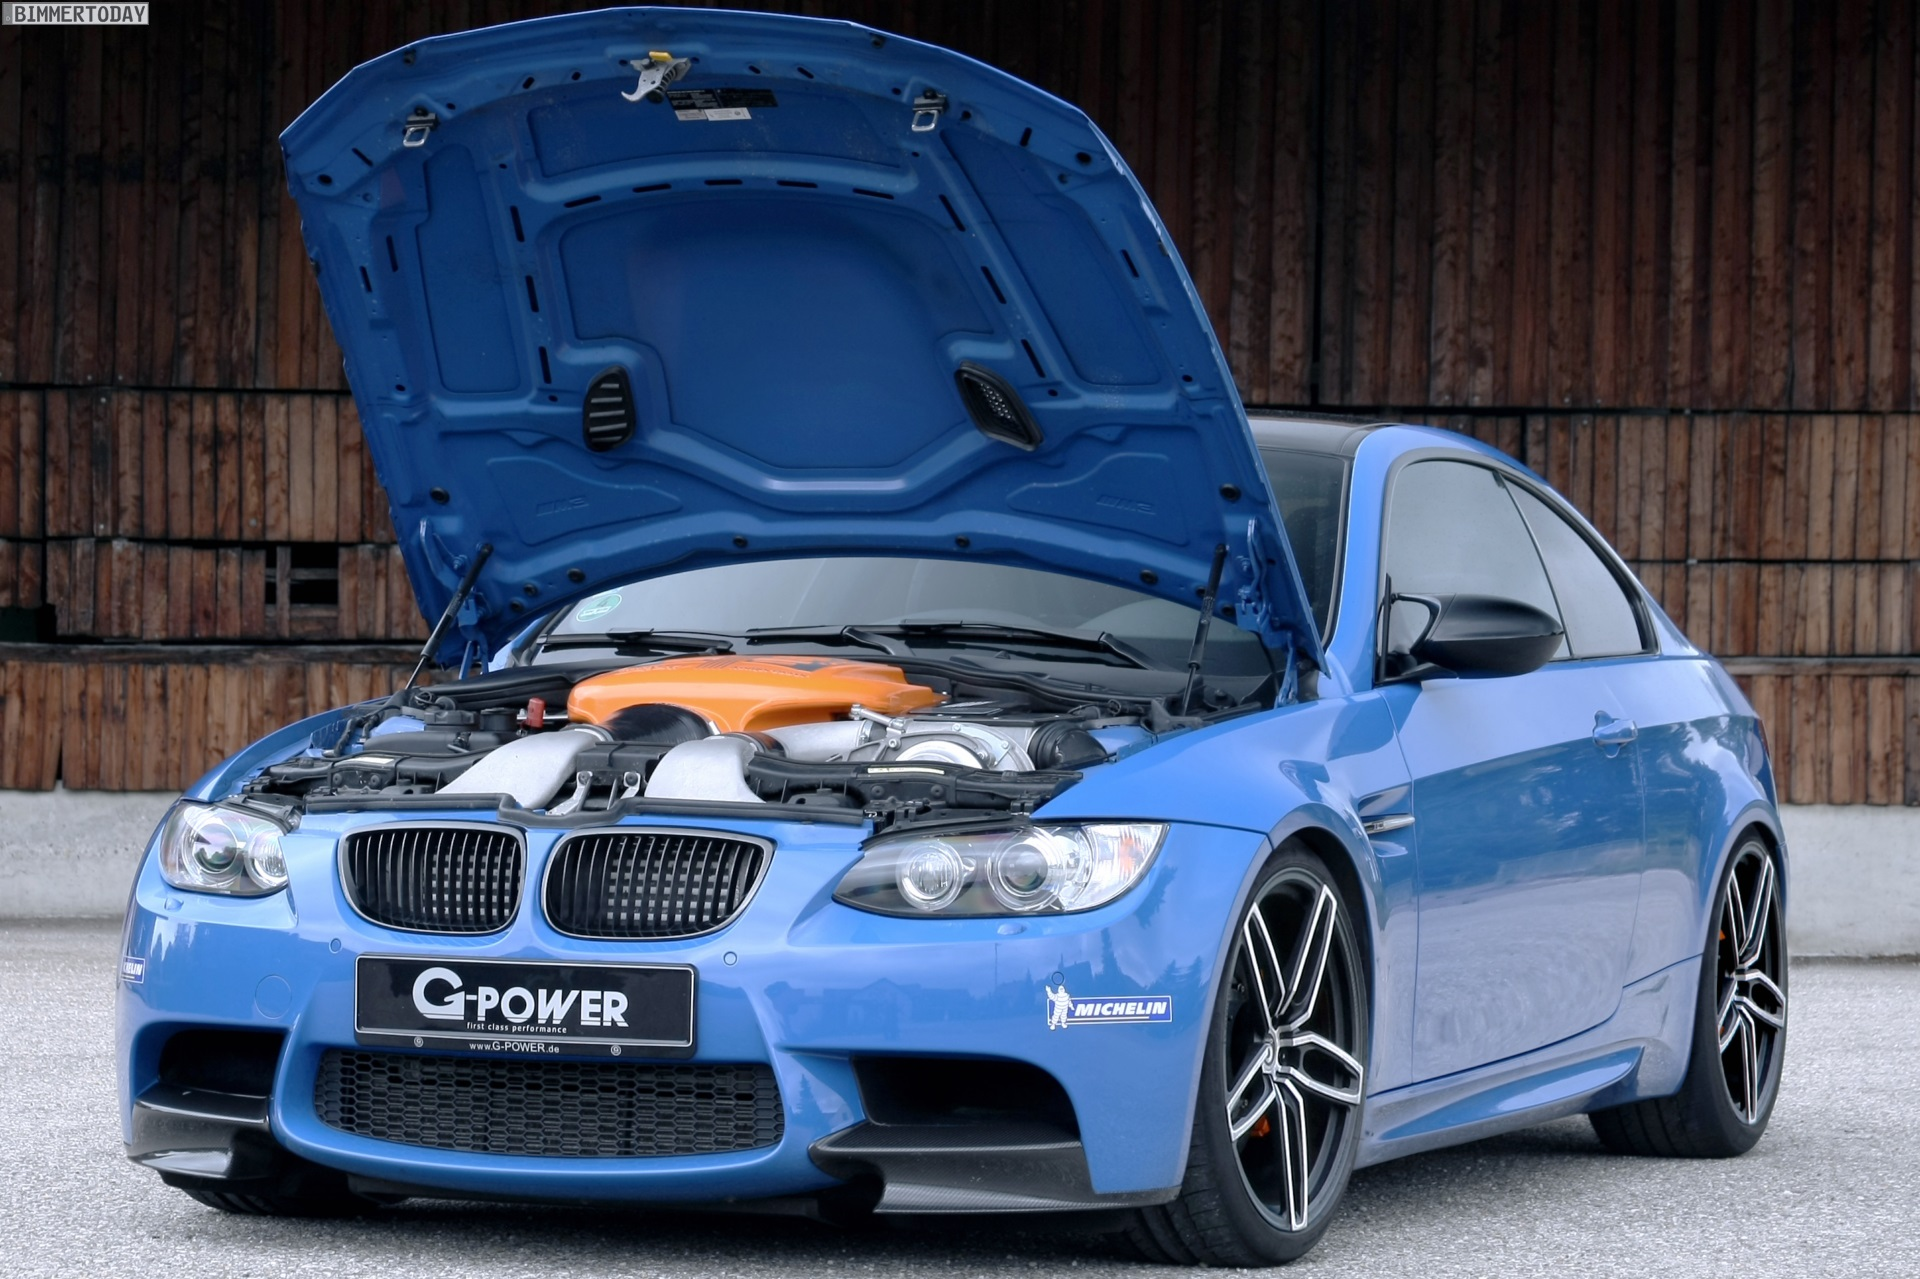 G Power Bmw E92 M3 Tuning Receives 630 Horsepower Upgrade